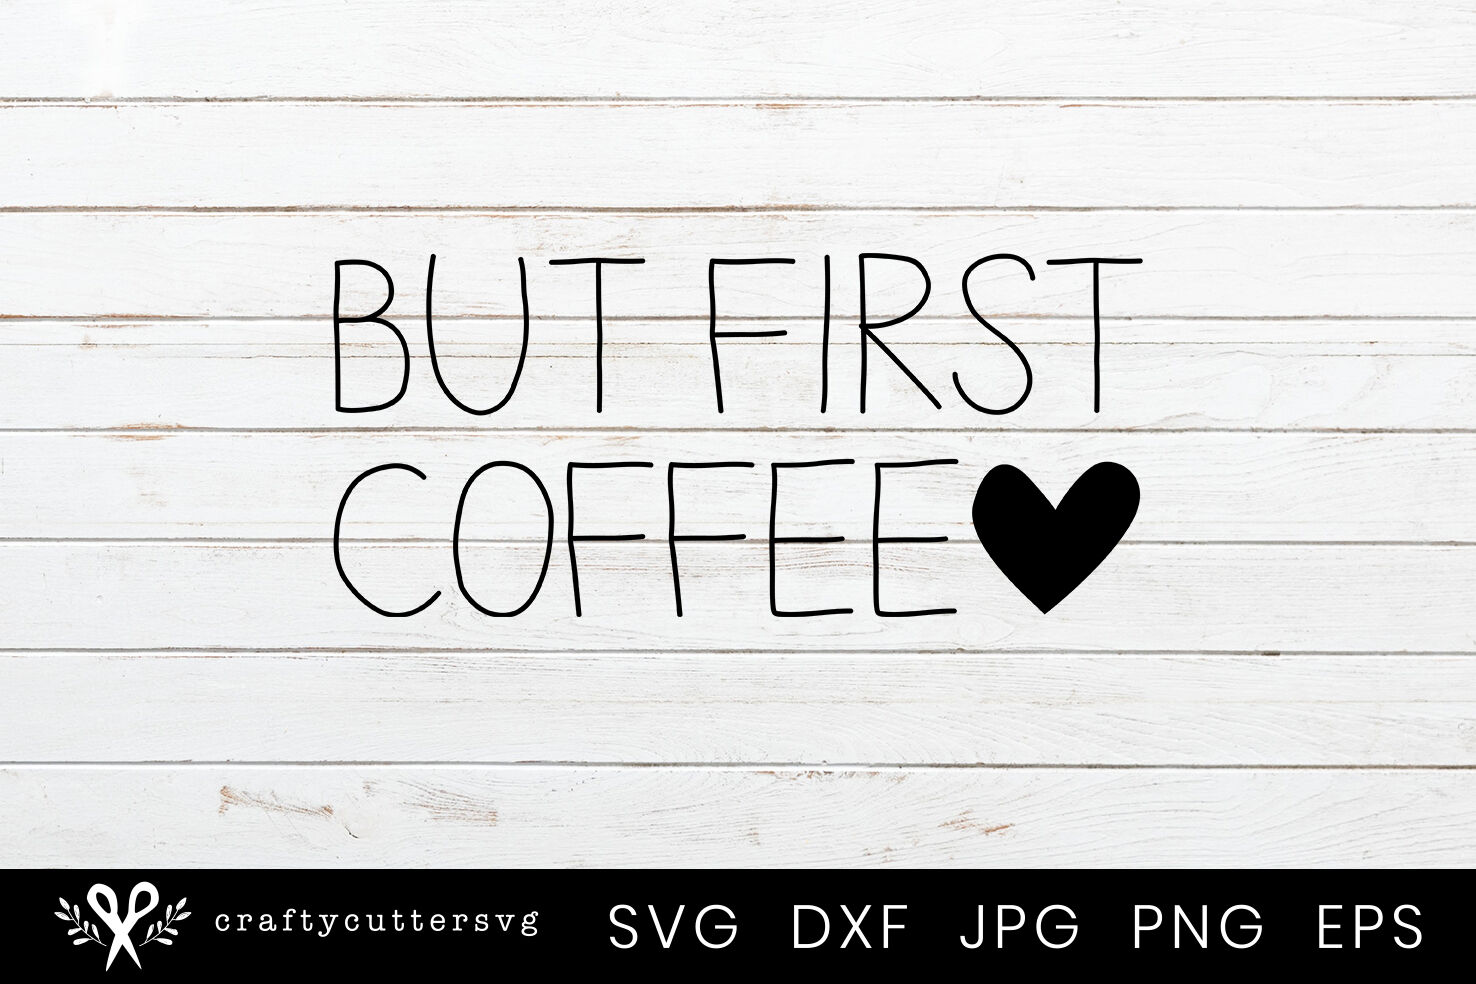 But First Coffee Svg Love Coffee Clipart Cutting Files By Crafty